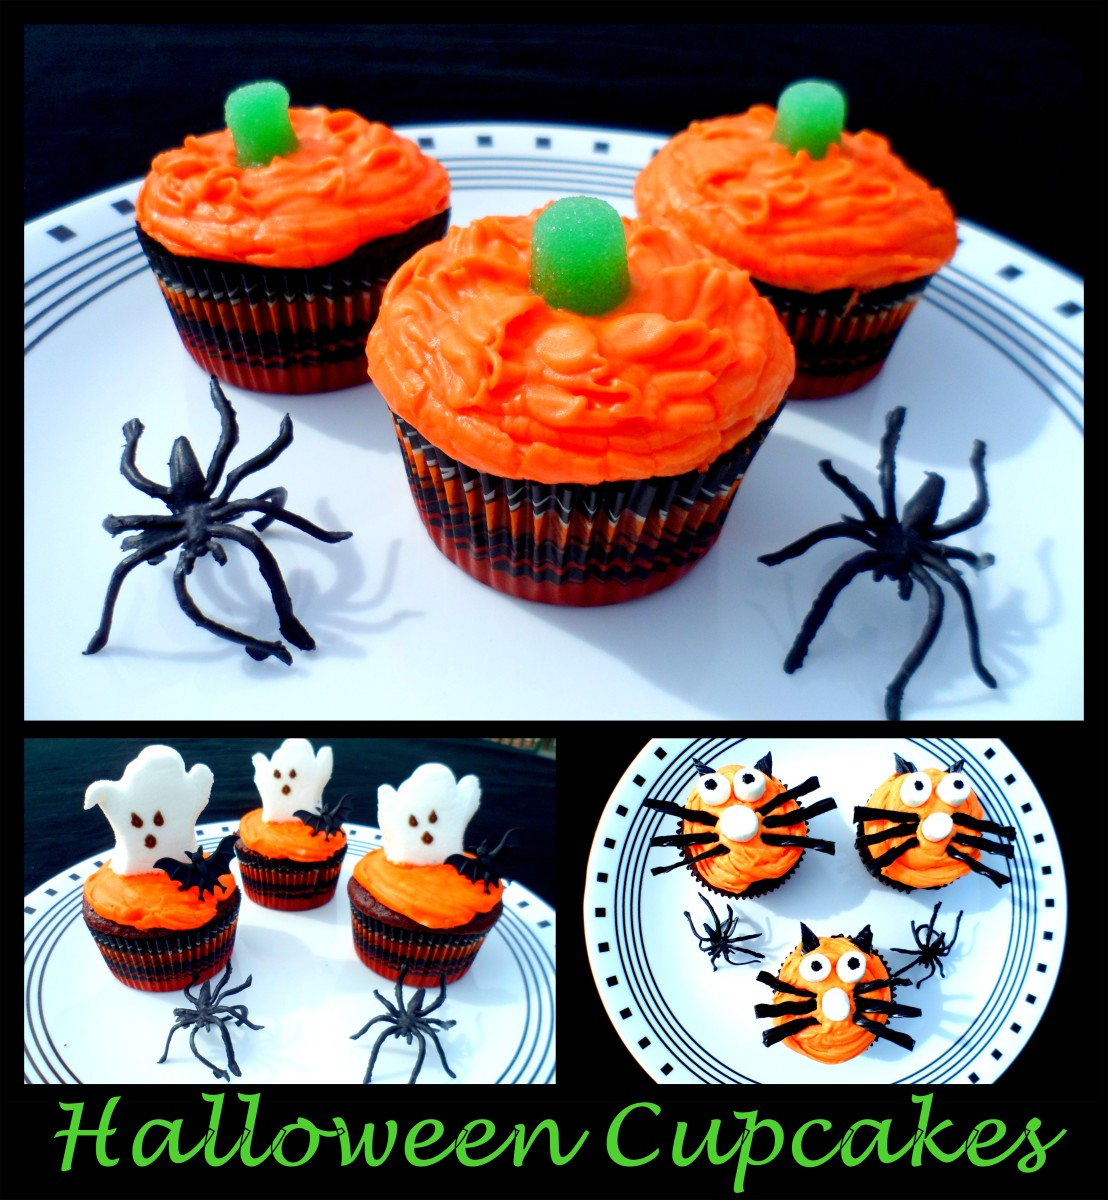 Halloween Cupcakes Decorating Ideas Galleries : Halloween Fun: Halloween Cupcakes - Cupcake Decorating Ideas